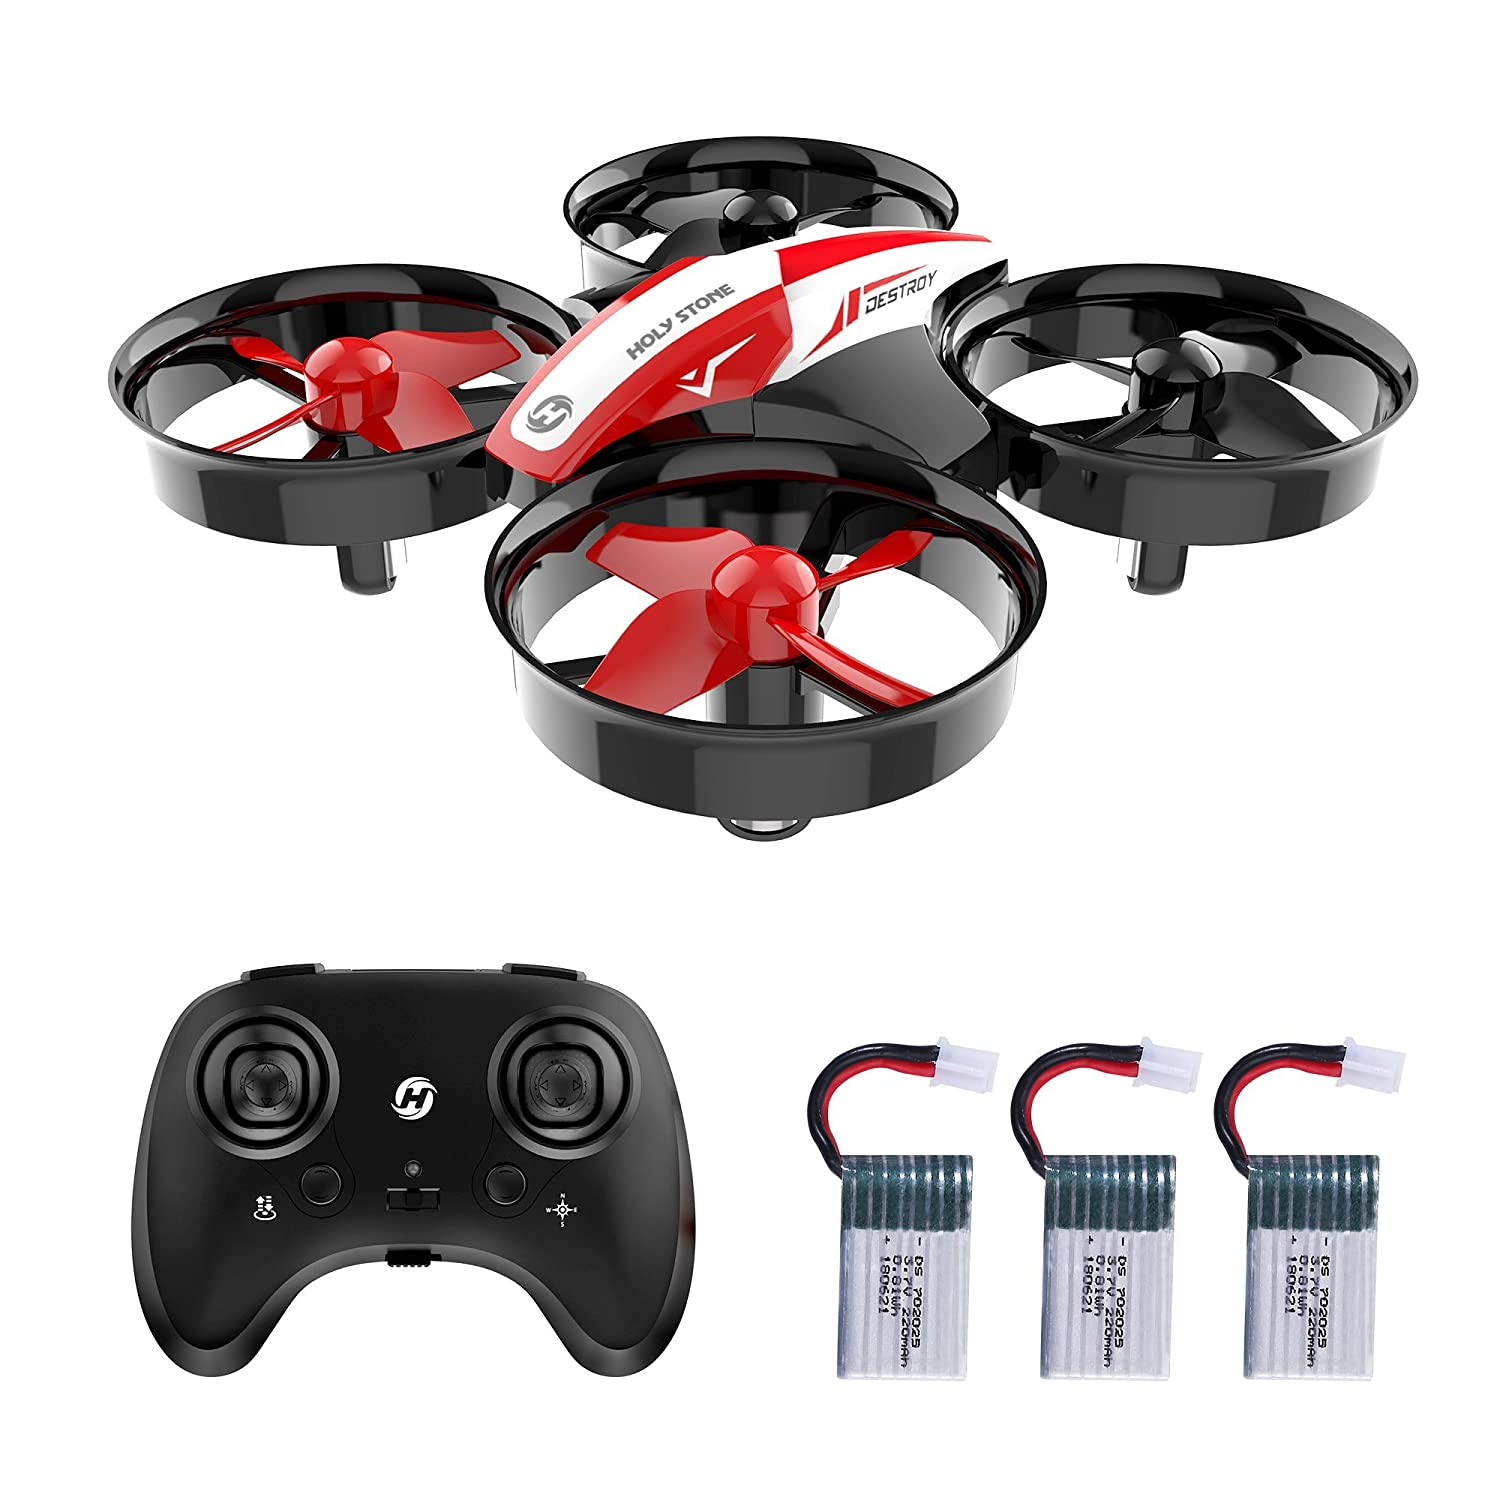 Best Drone for Kids & Beginners RC Helicopter Plane with Auto Hovering